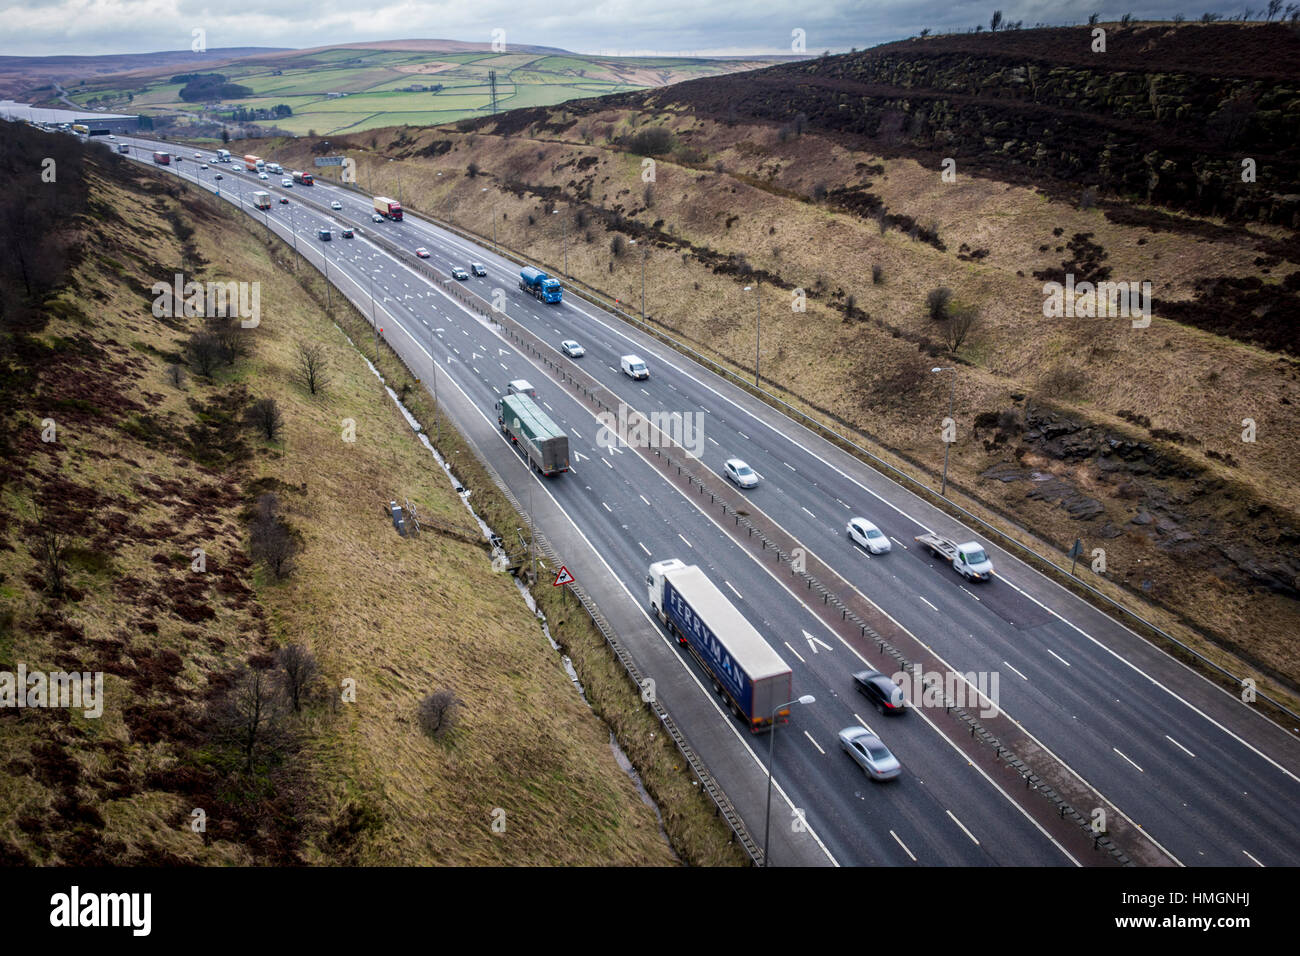 View from Scammonden Bridge over the M62 motorway, Scammonden, Kirklees, West Yorkshire - Stock Image